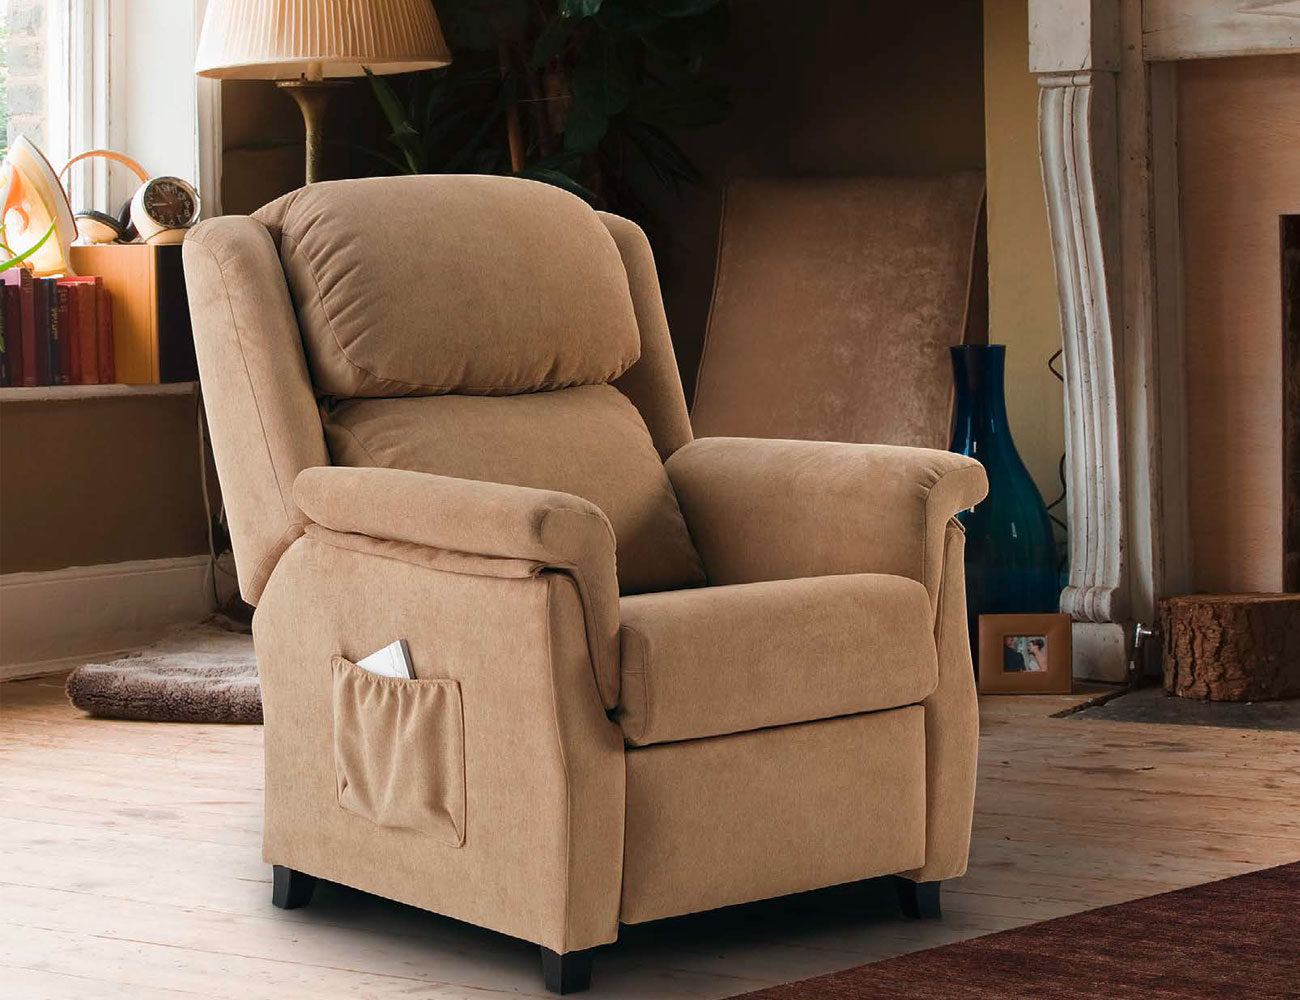 Sillon relax manual bianca 116